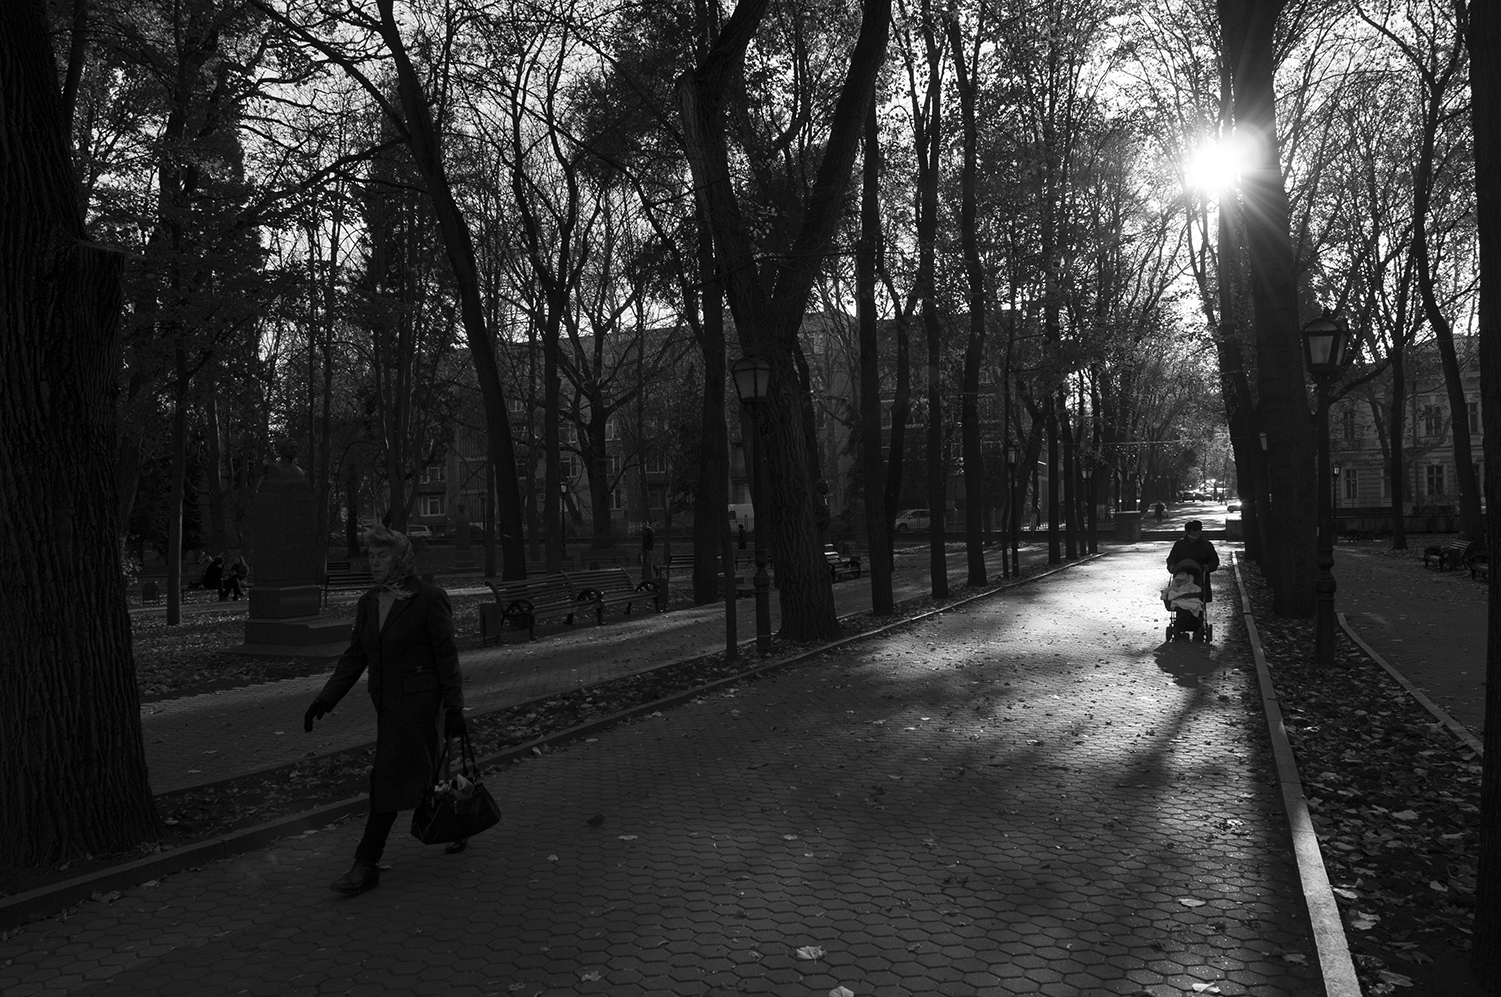 Woman pushing a stroller a the end of a cold winter day